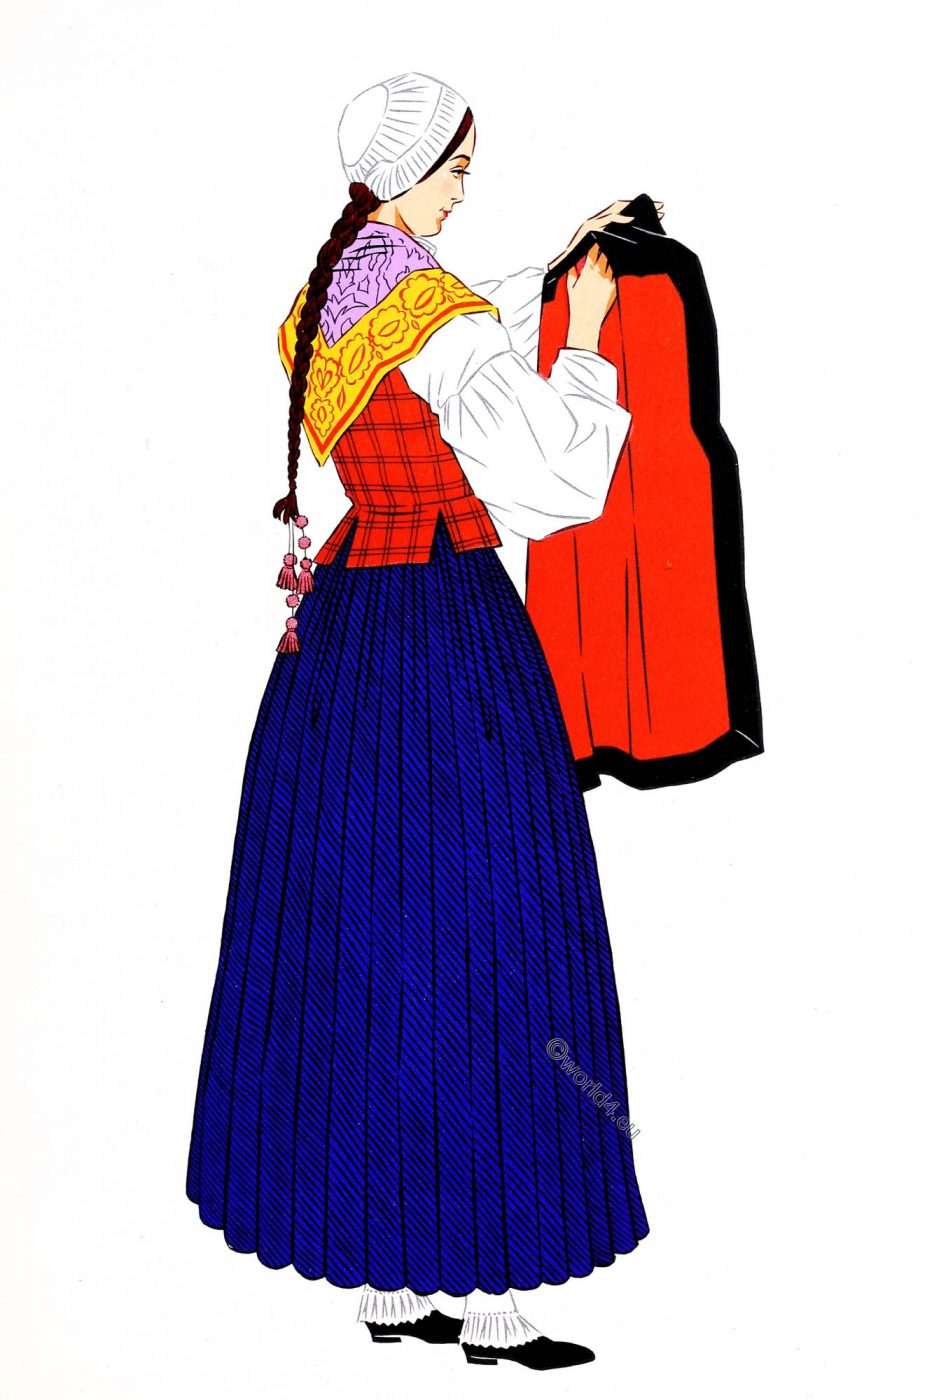 French, Pyrenees, Eaux-Bonnes, costume, traditional clothing, woman, France